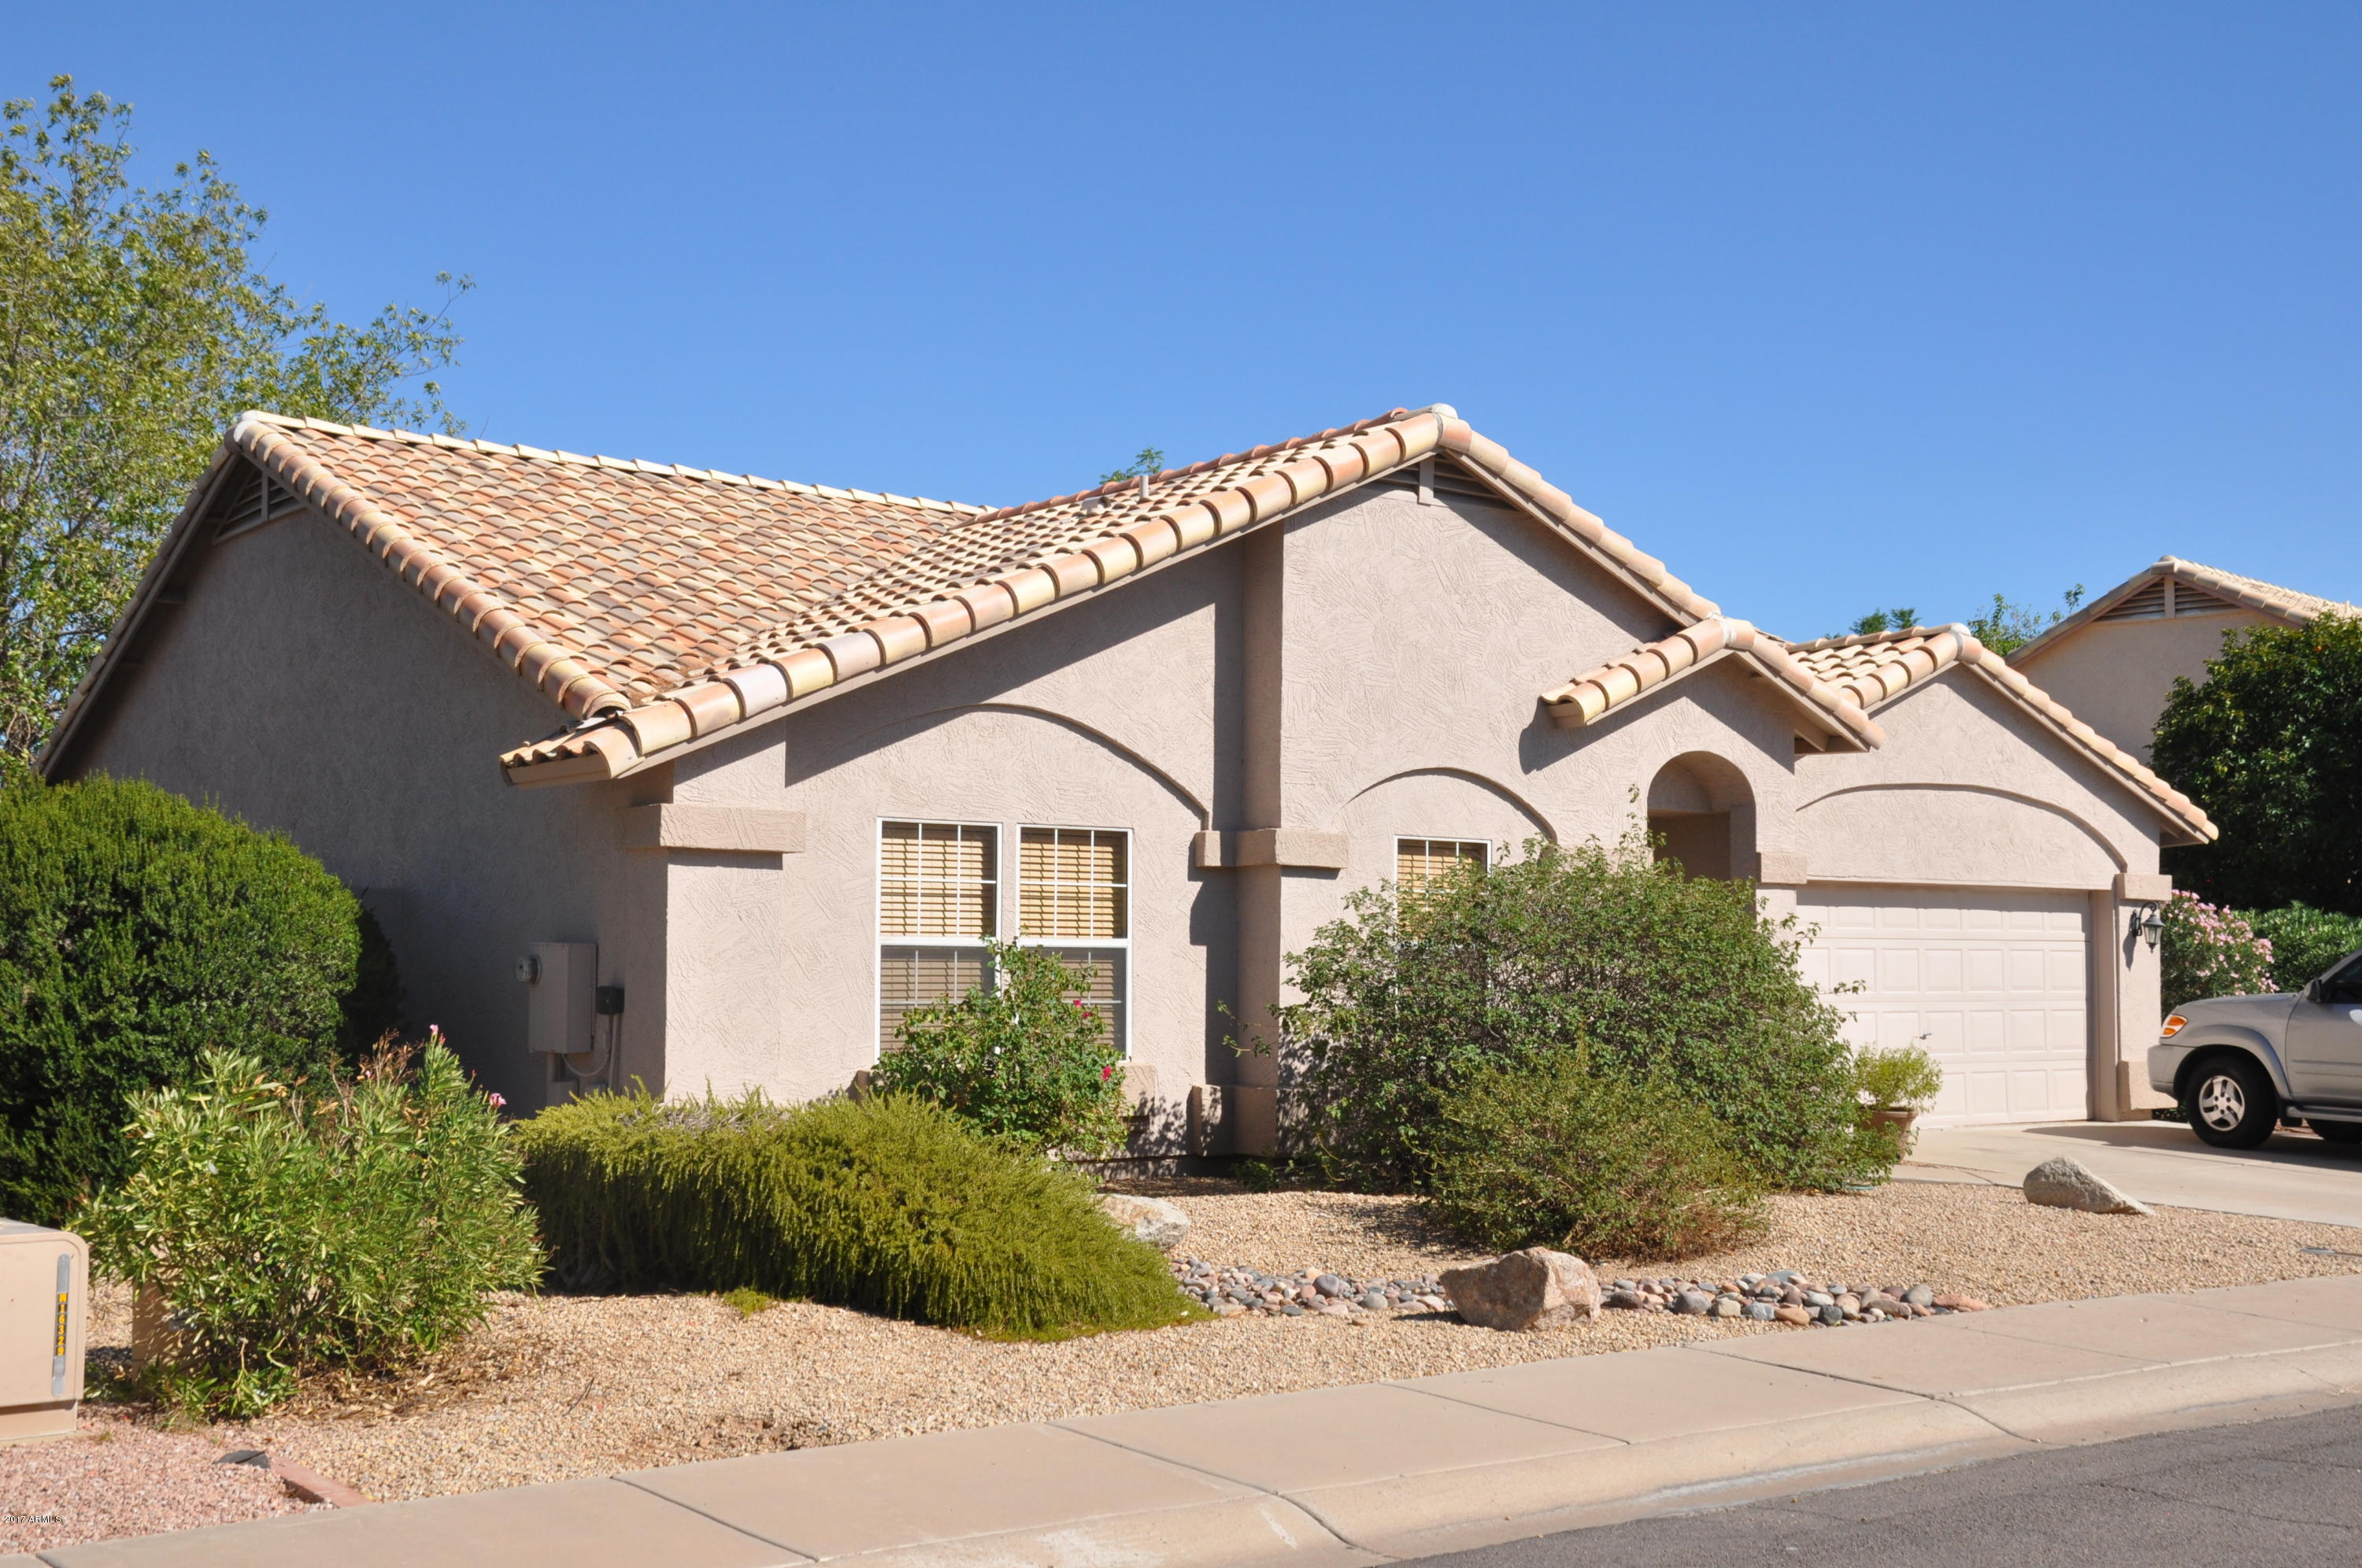 Photo of 14815 N 90TH Avenue N, Peoria, AZ 85381